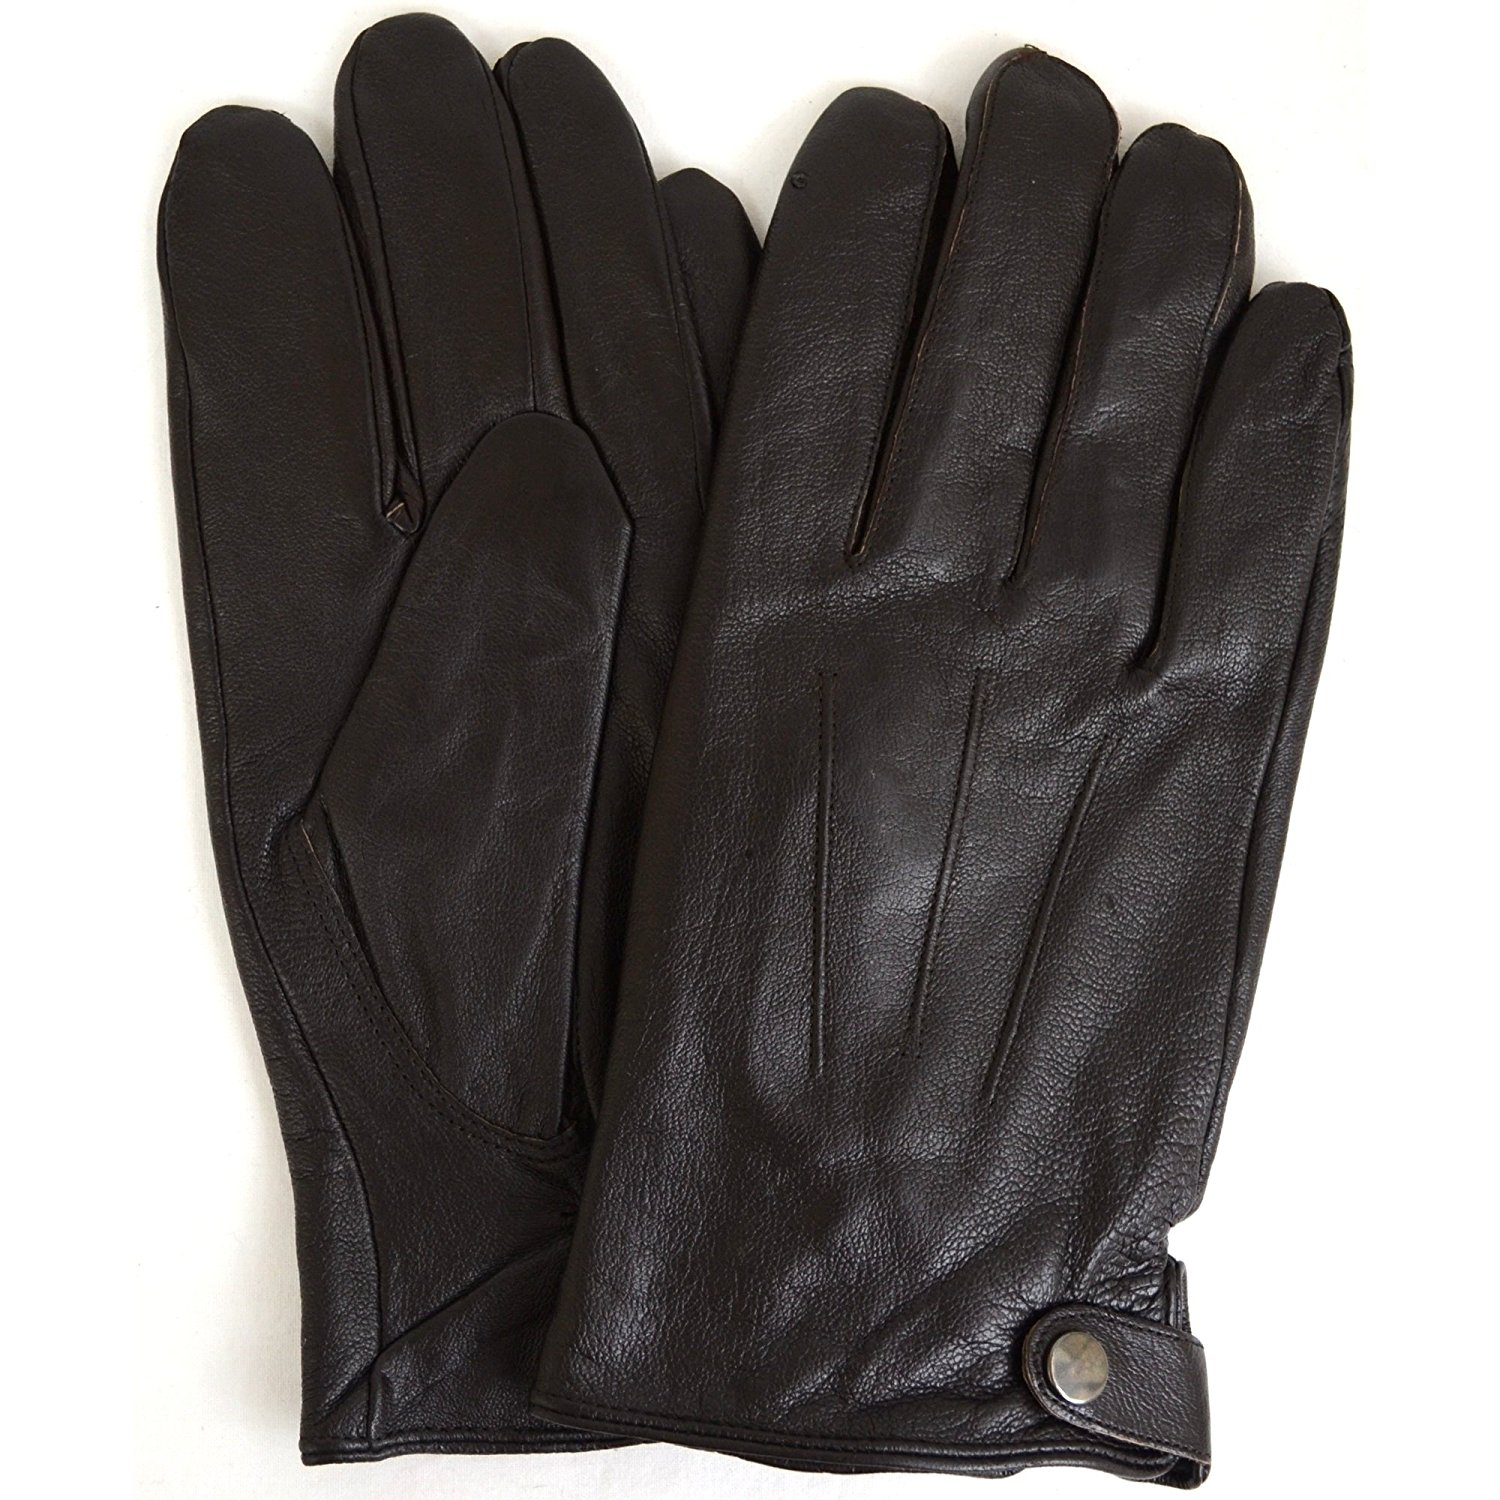 Mens Premium Soft Leather Glove with Thick Knitted Cuff , 3 Point Stitch and Warm Fleece Lining